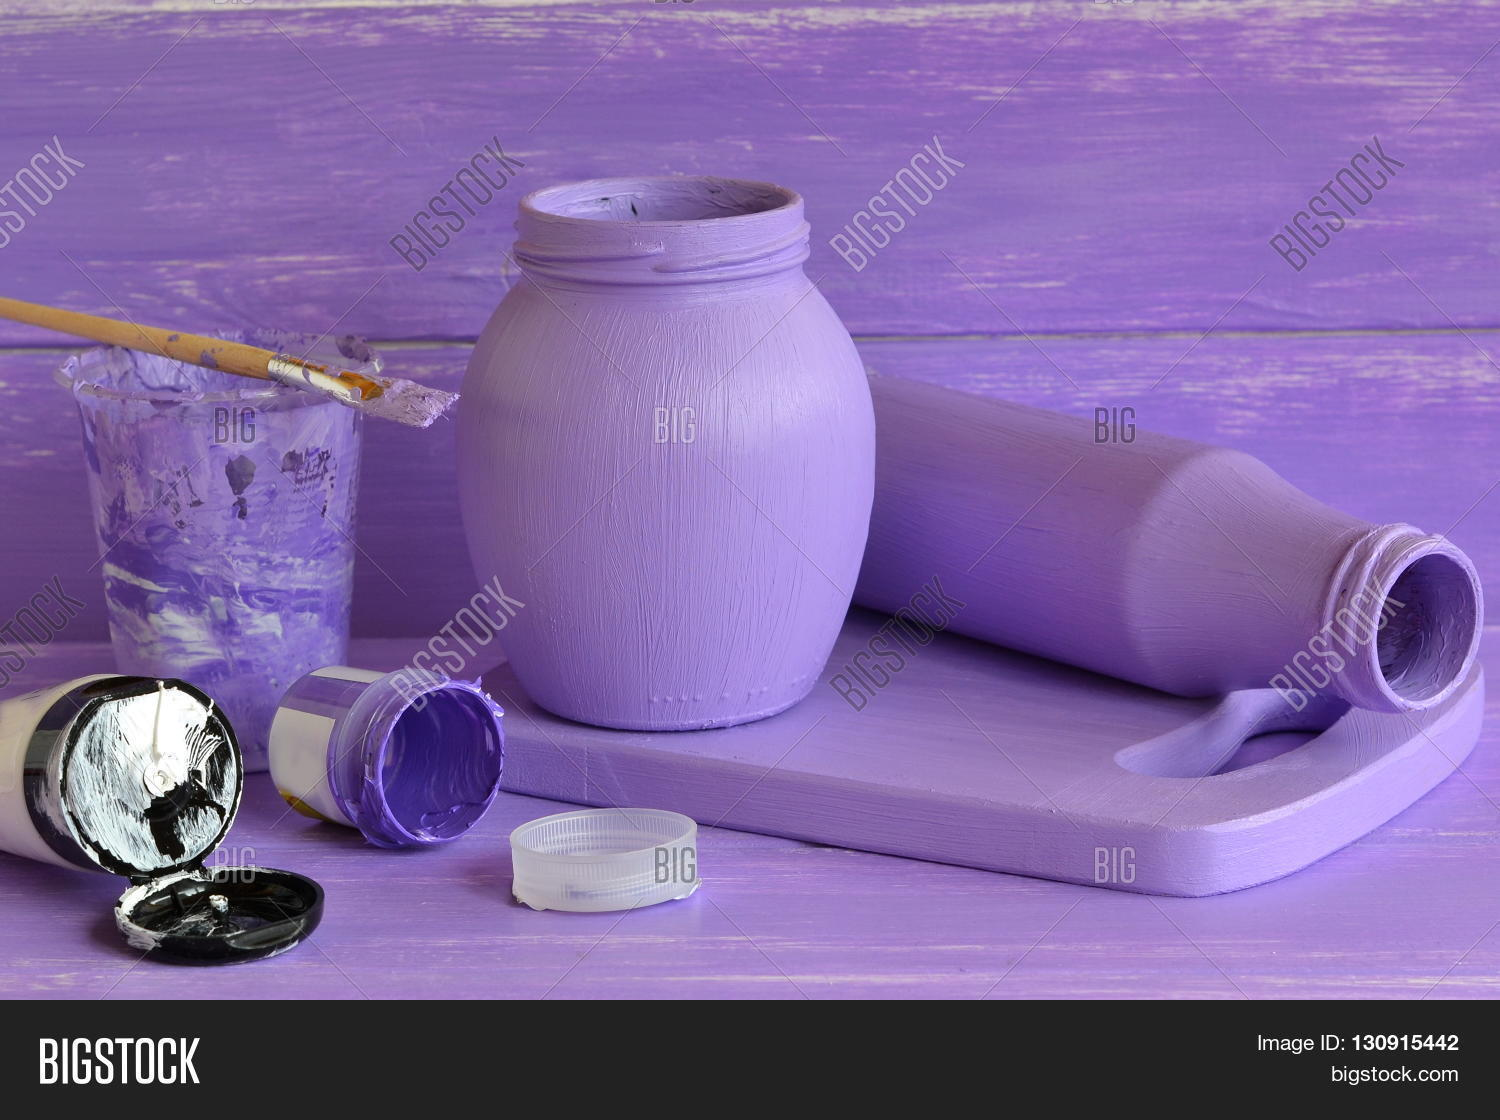 Painted glass jars tubes acrylic image photo bigstock for Home decoration from waste